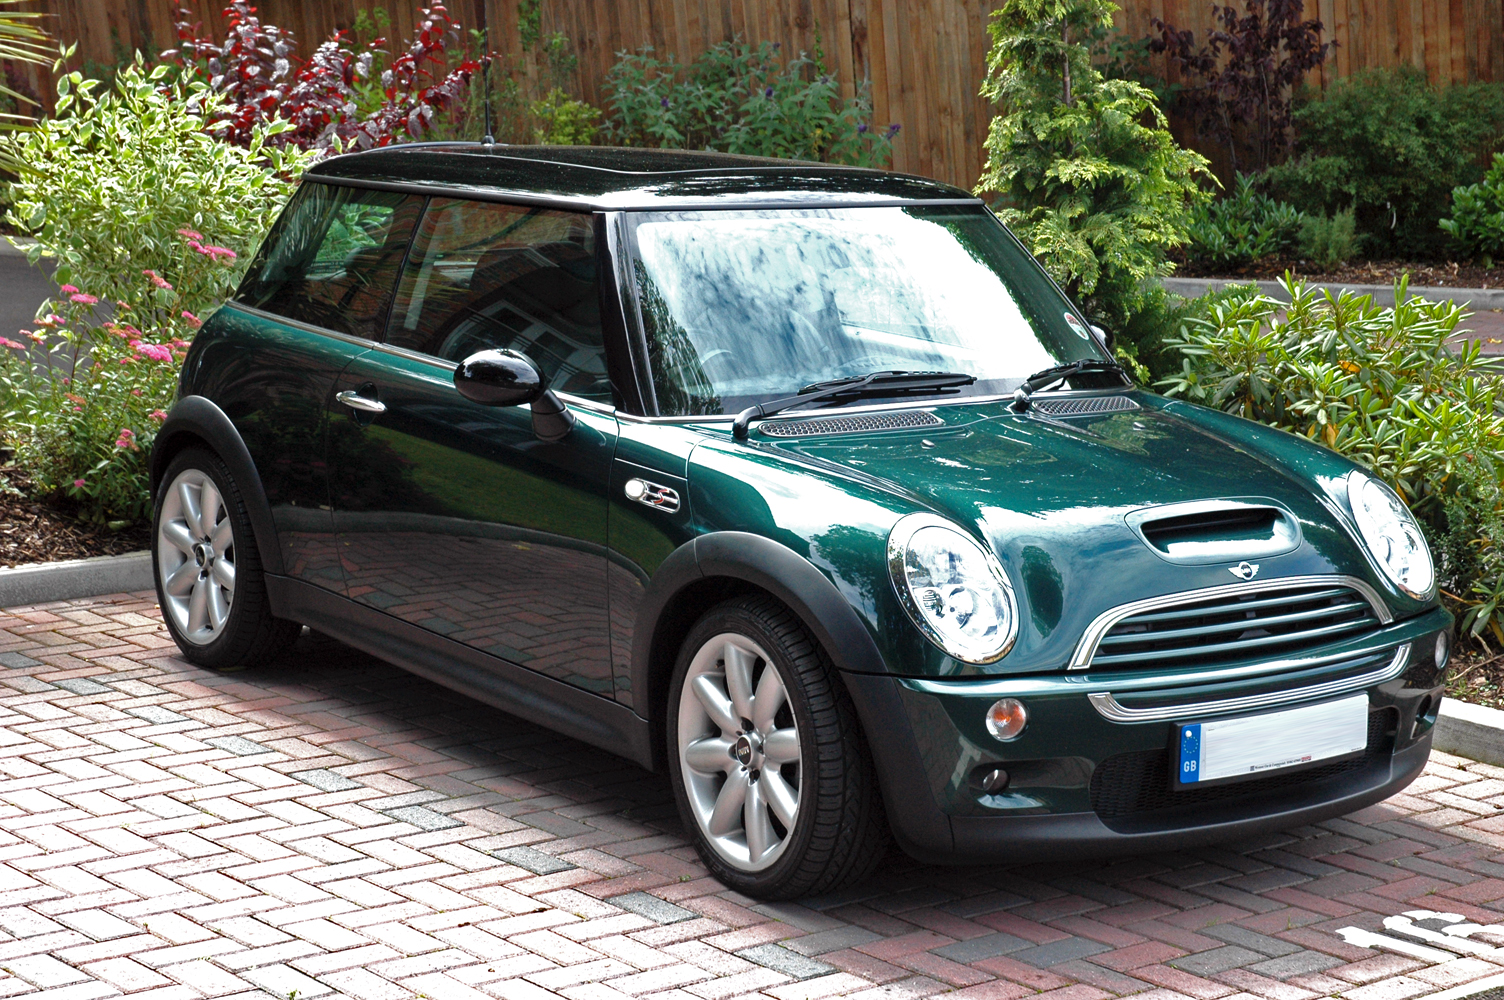 British Racing Green Mini Cooper S | Flickr - Photo Sharing!